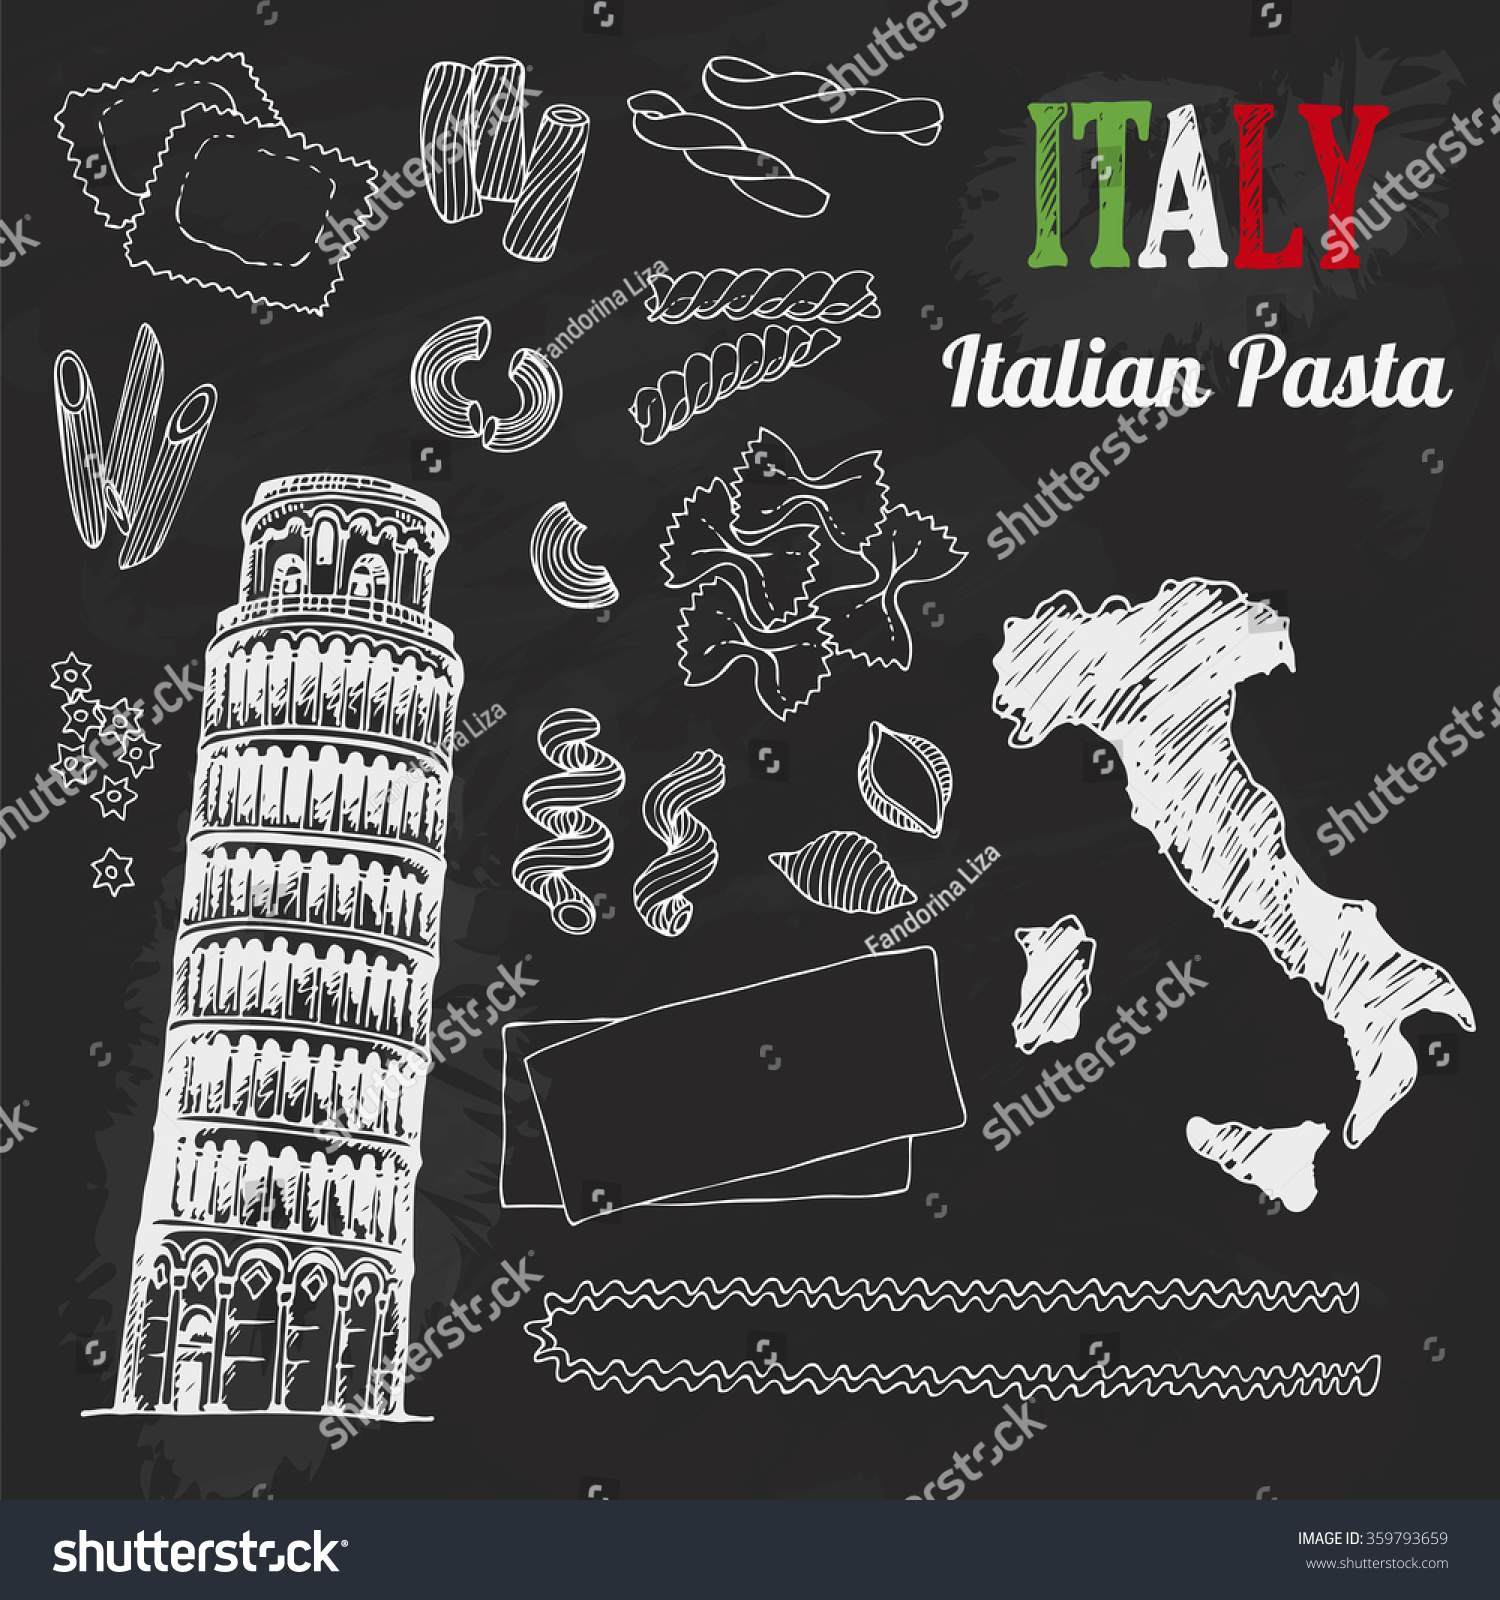 Italian Restaurant Near Me: Italy Set Food Collection Hand Drawn Stock Vector